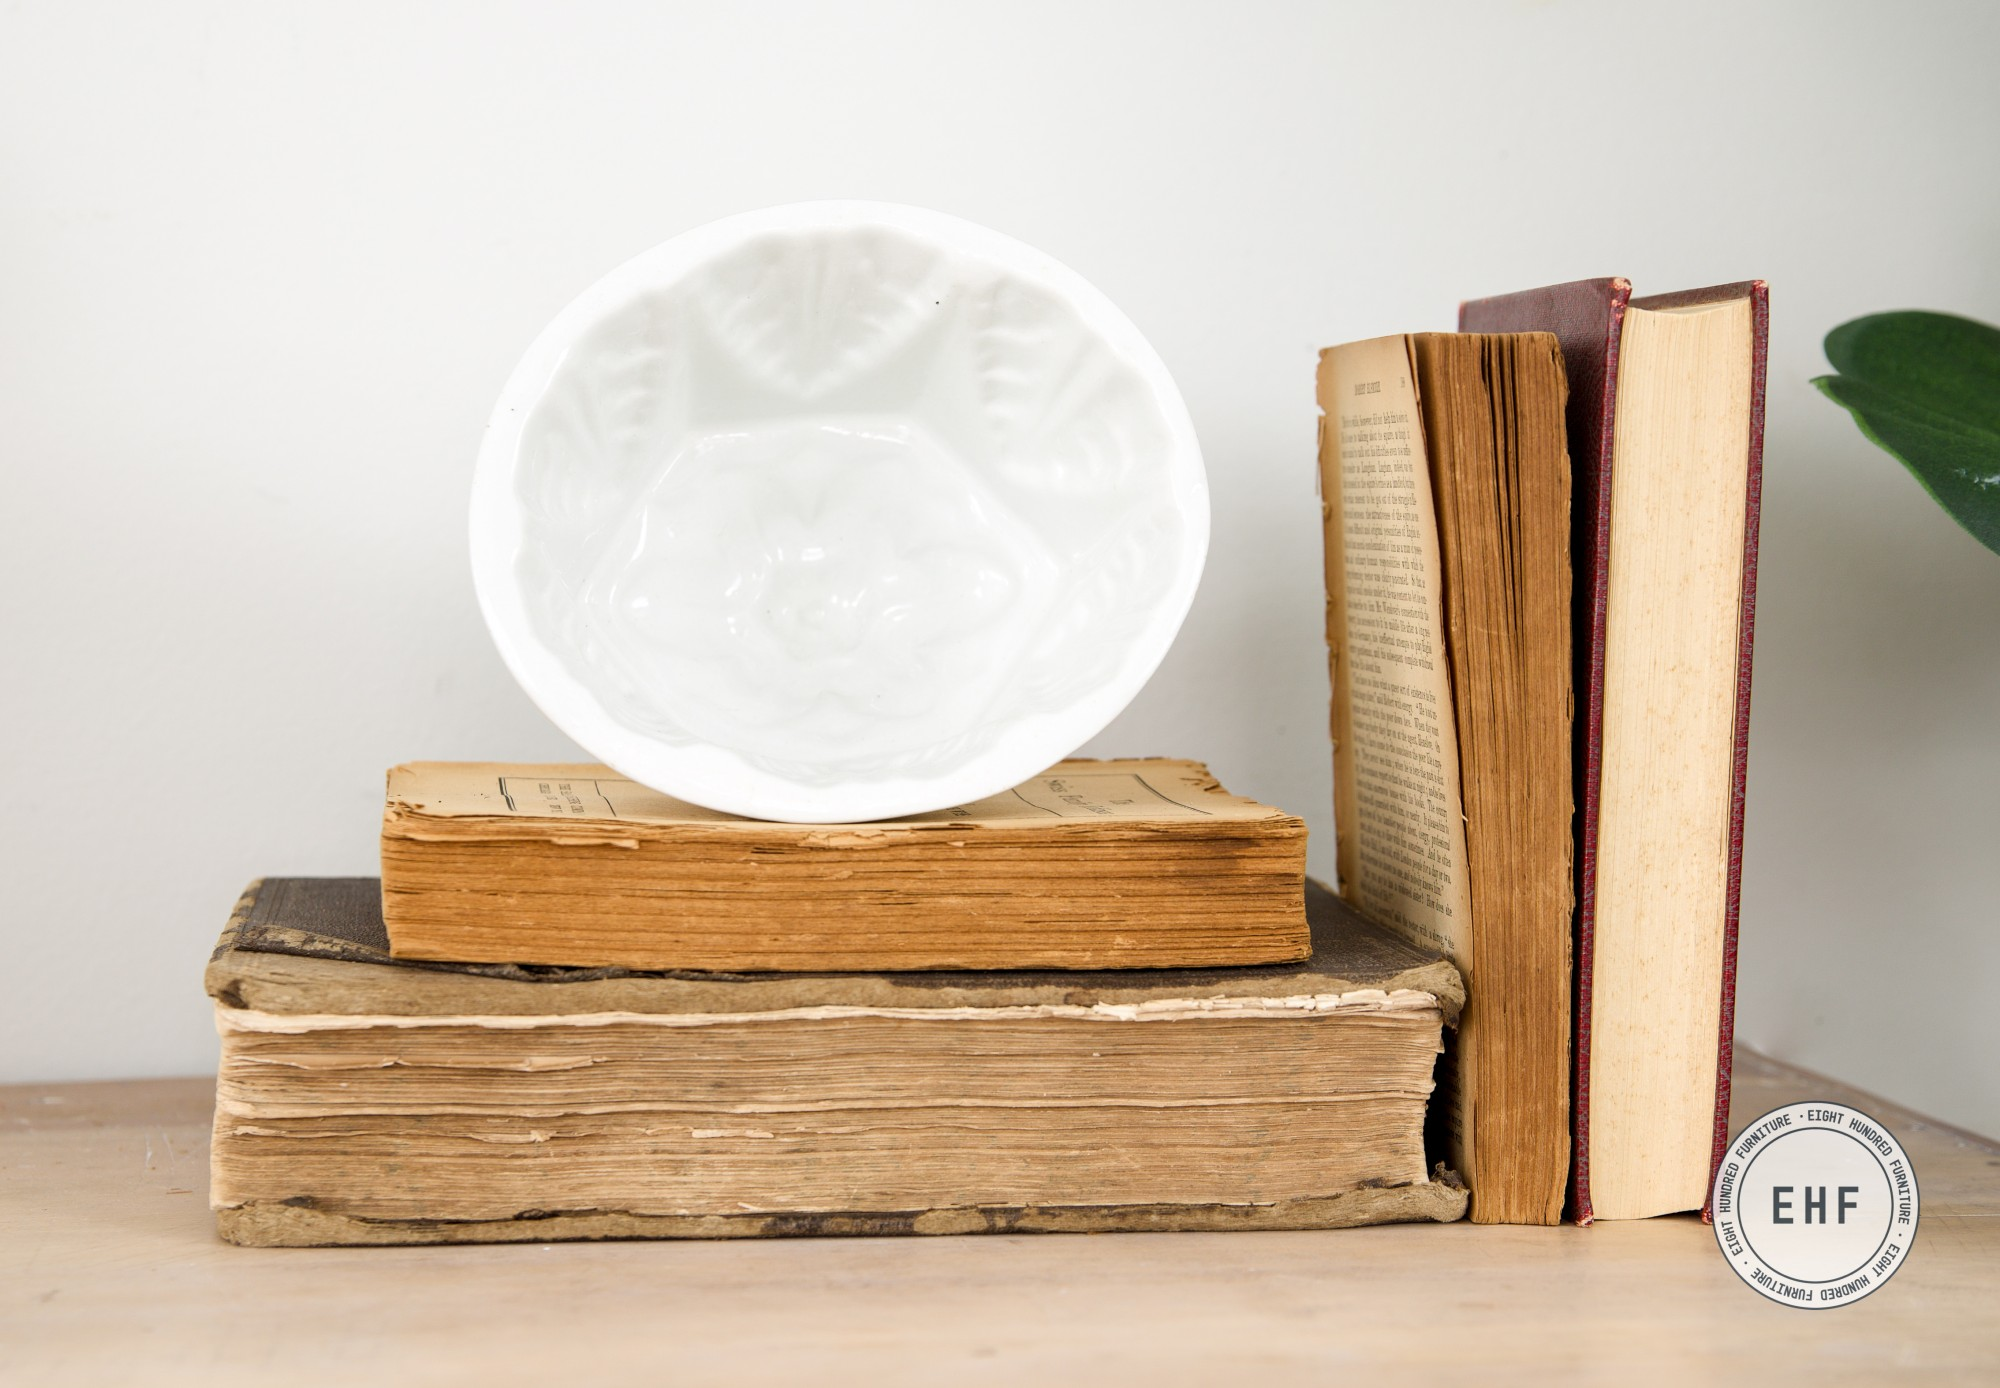 Ironstone Jelly Mold with old books